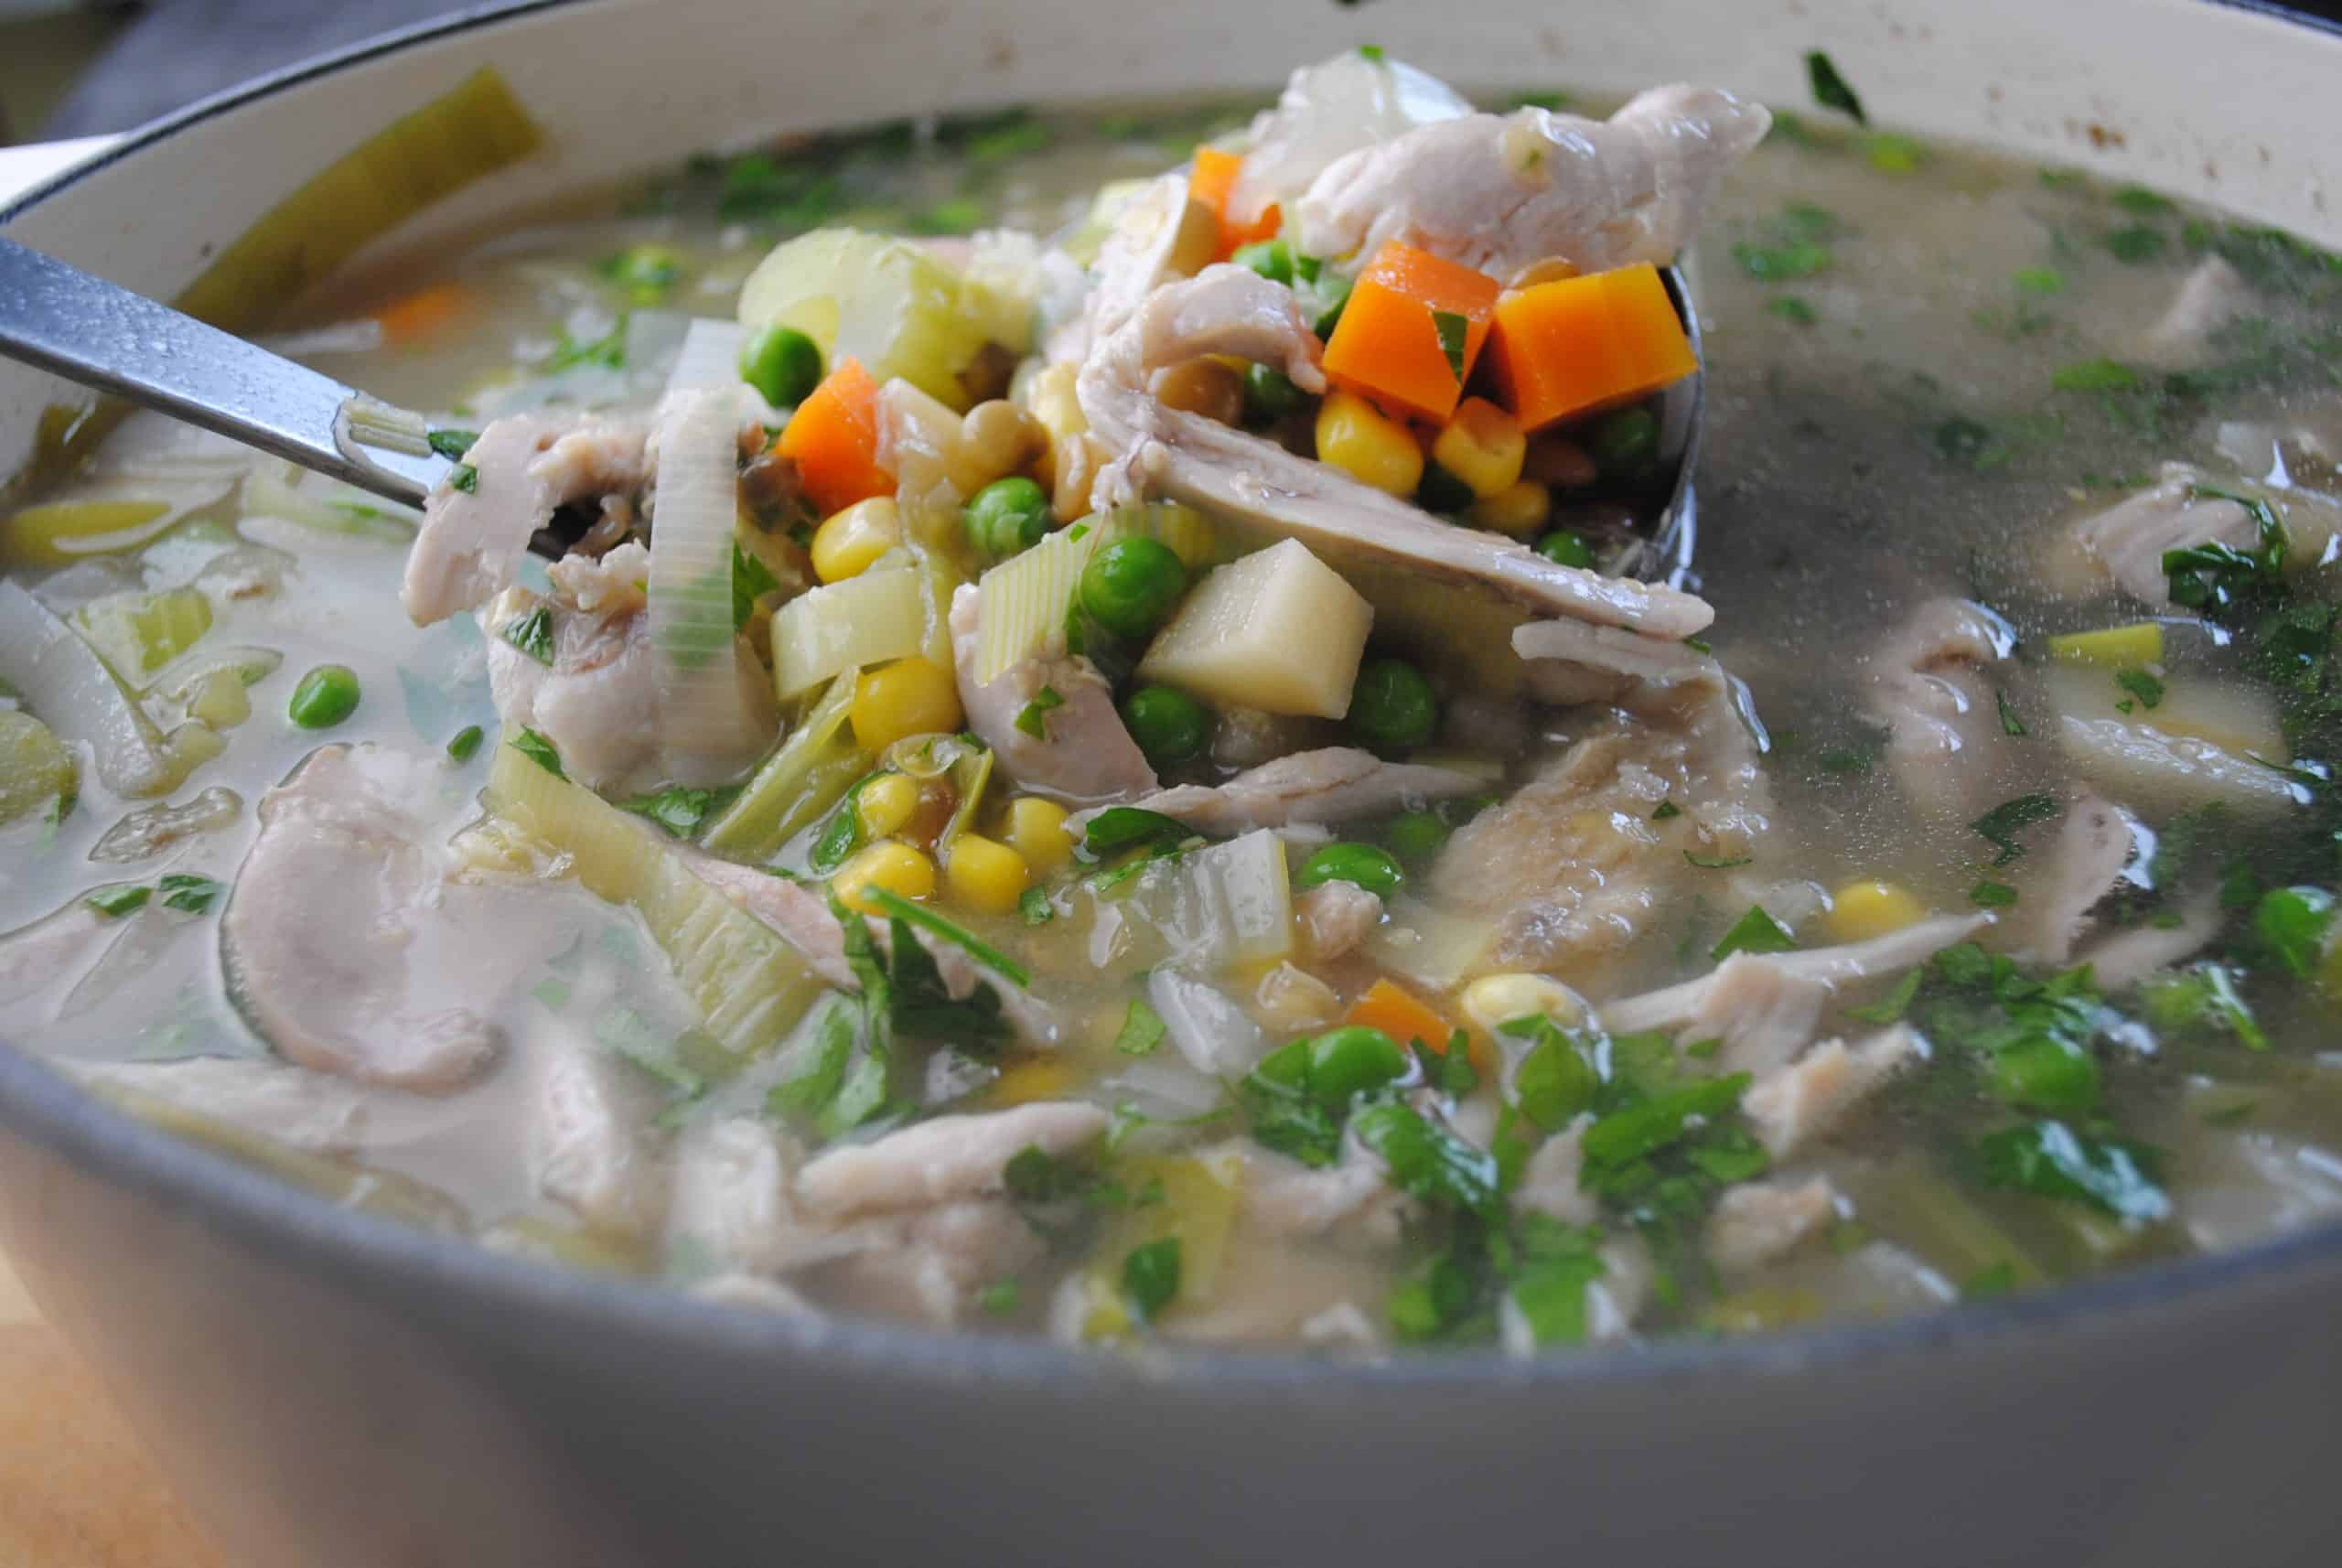 Add chicken, corn kernels, creamed corn, peas, parsley, worstershire sauce, salt and pepper and simmer for a further 15 mins for hearty chicken, vegetable and lentil soup